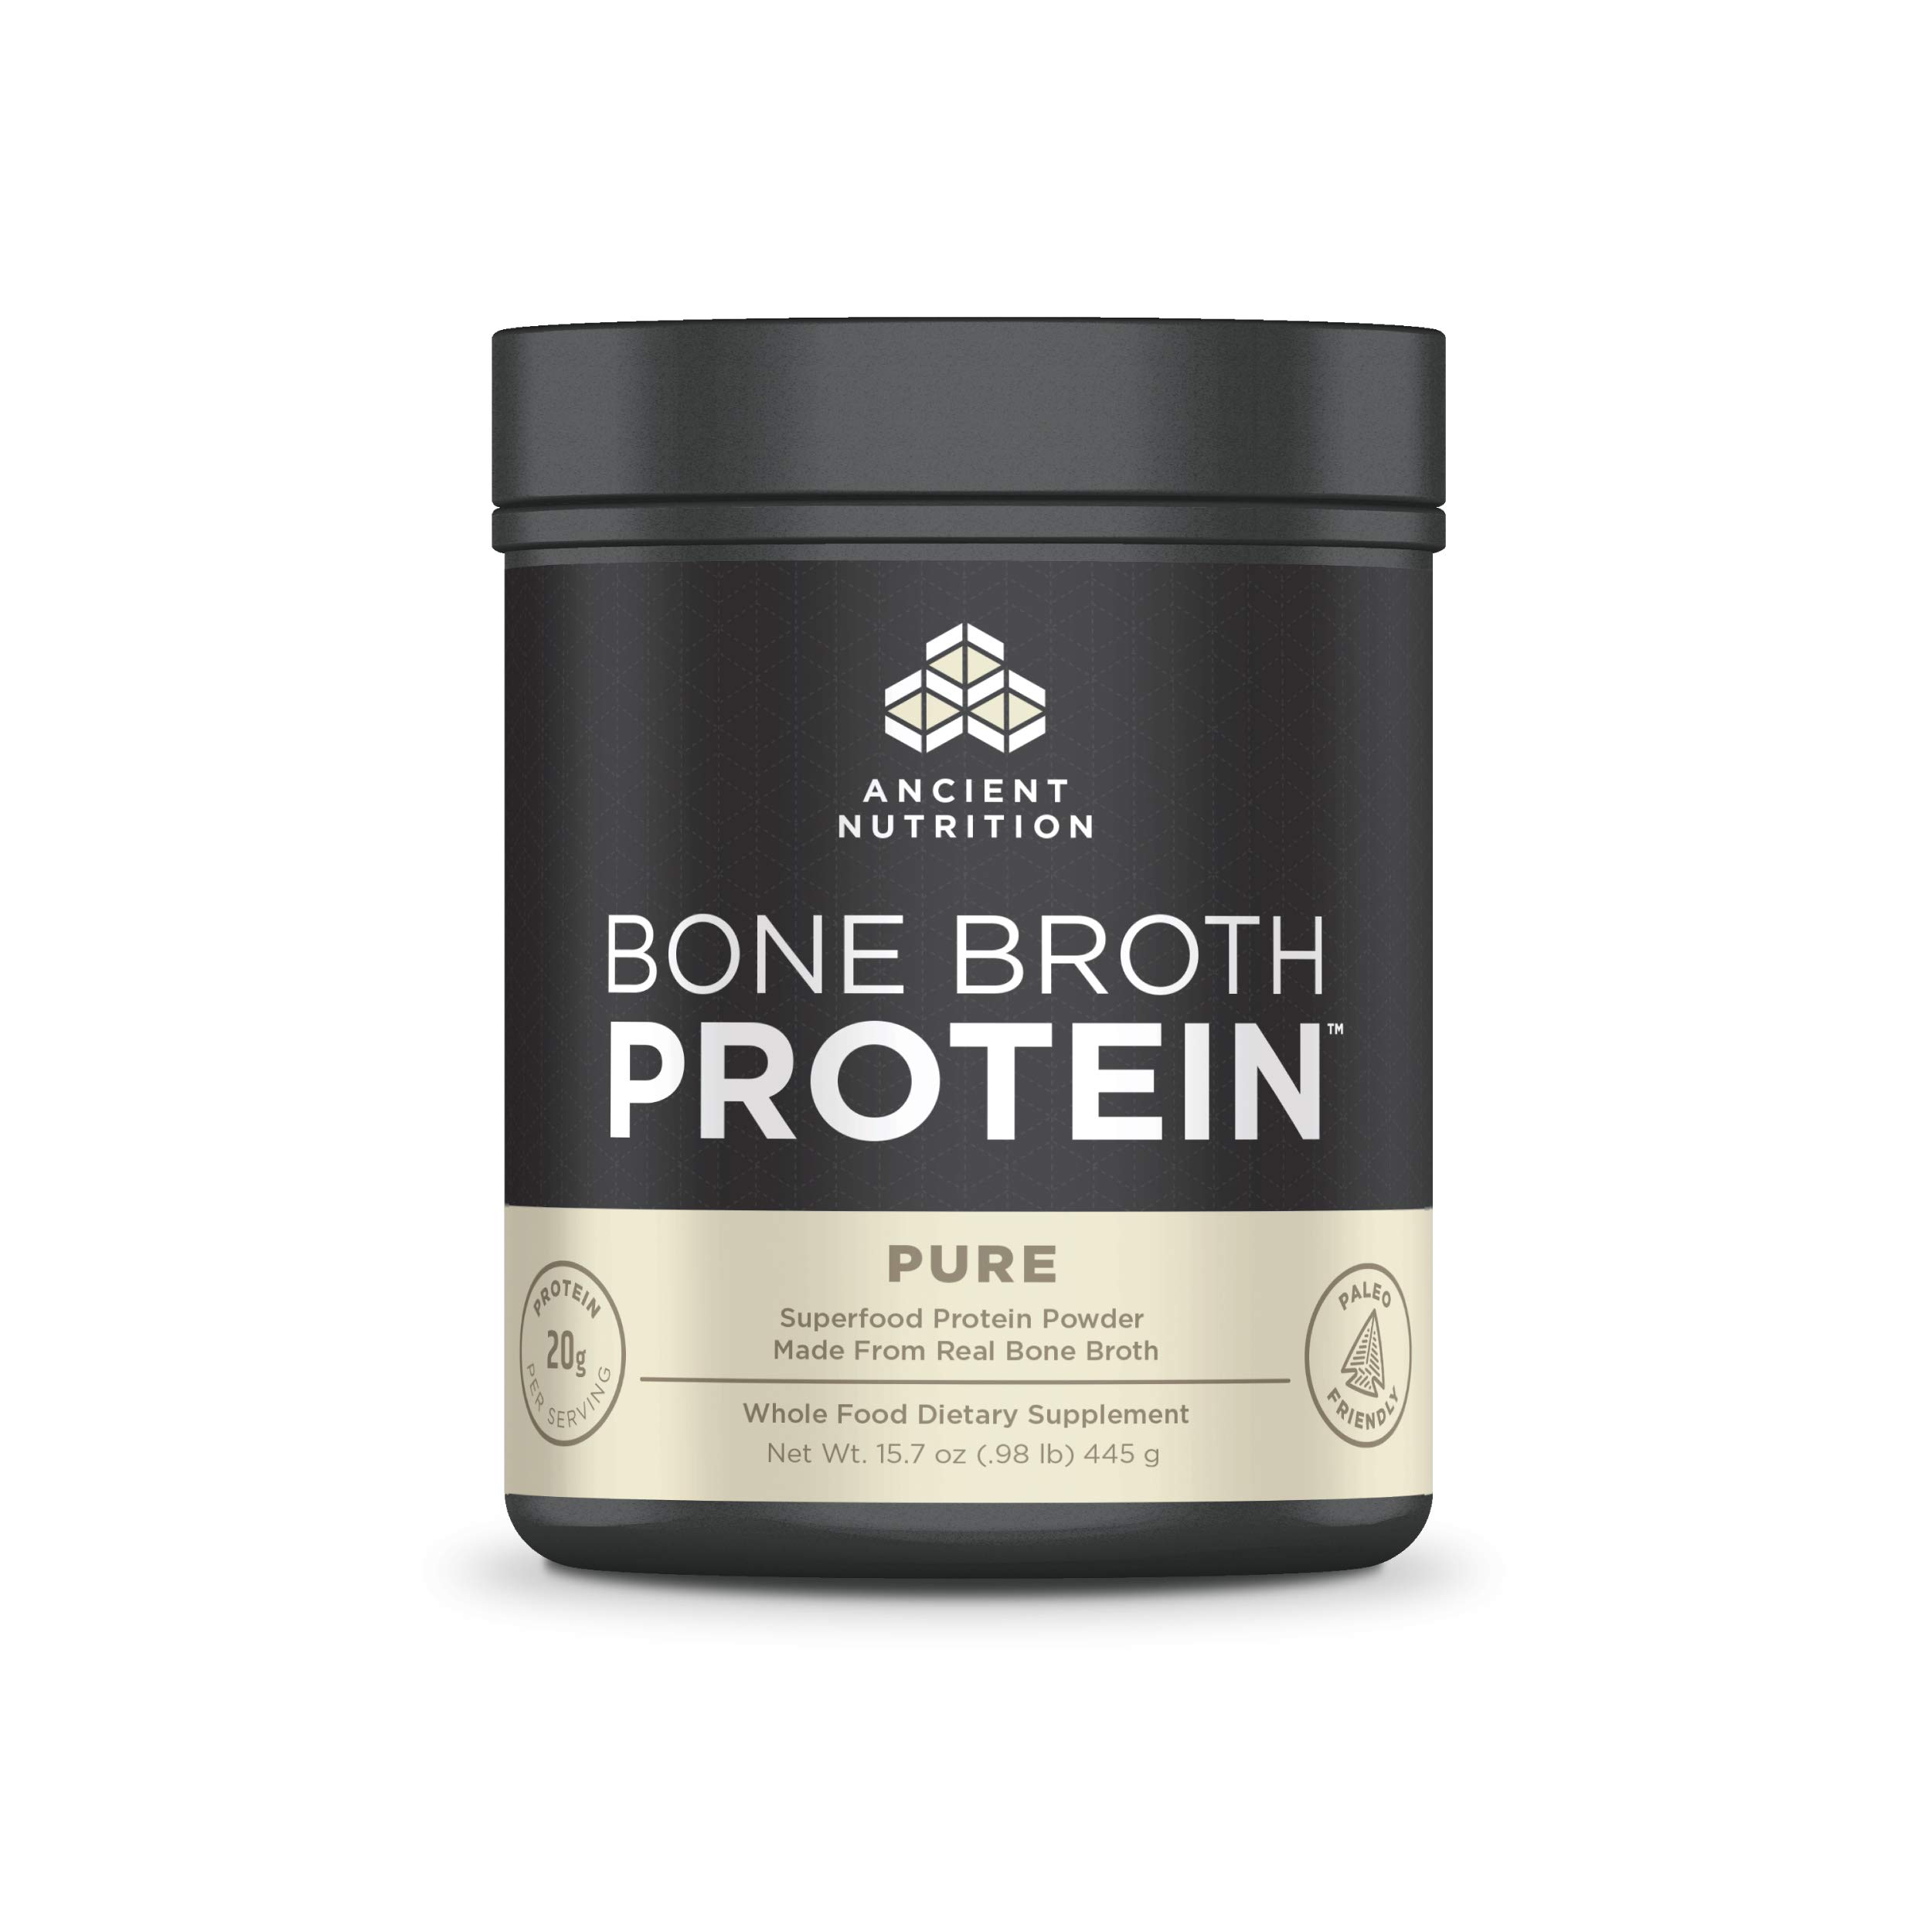 Ancient Nutrition Bone Broth Protein, Pure - Dairy Free, Gluten Free and Paleo Friendly, 20 Servings by Ancient Nutrition